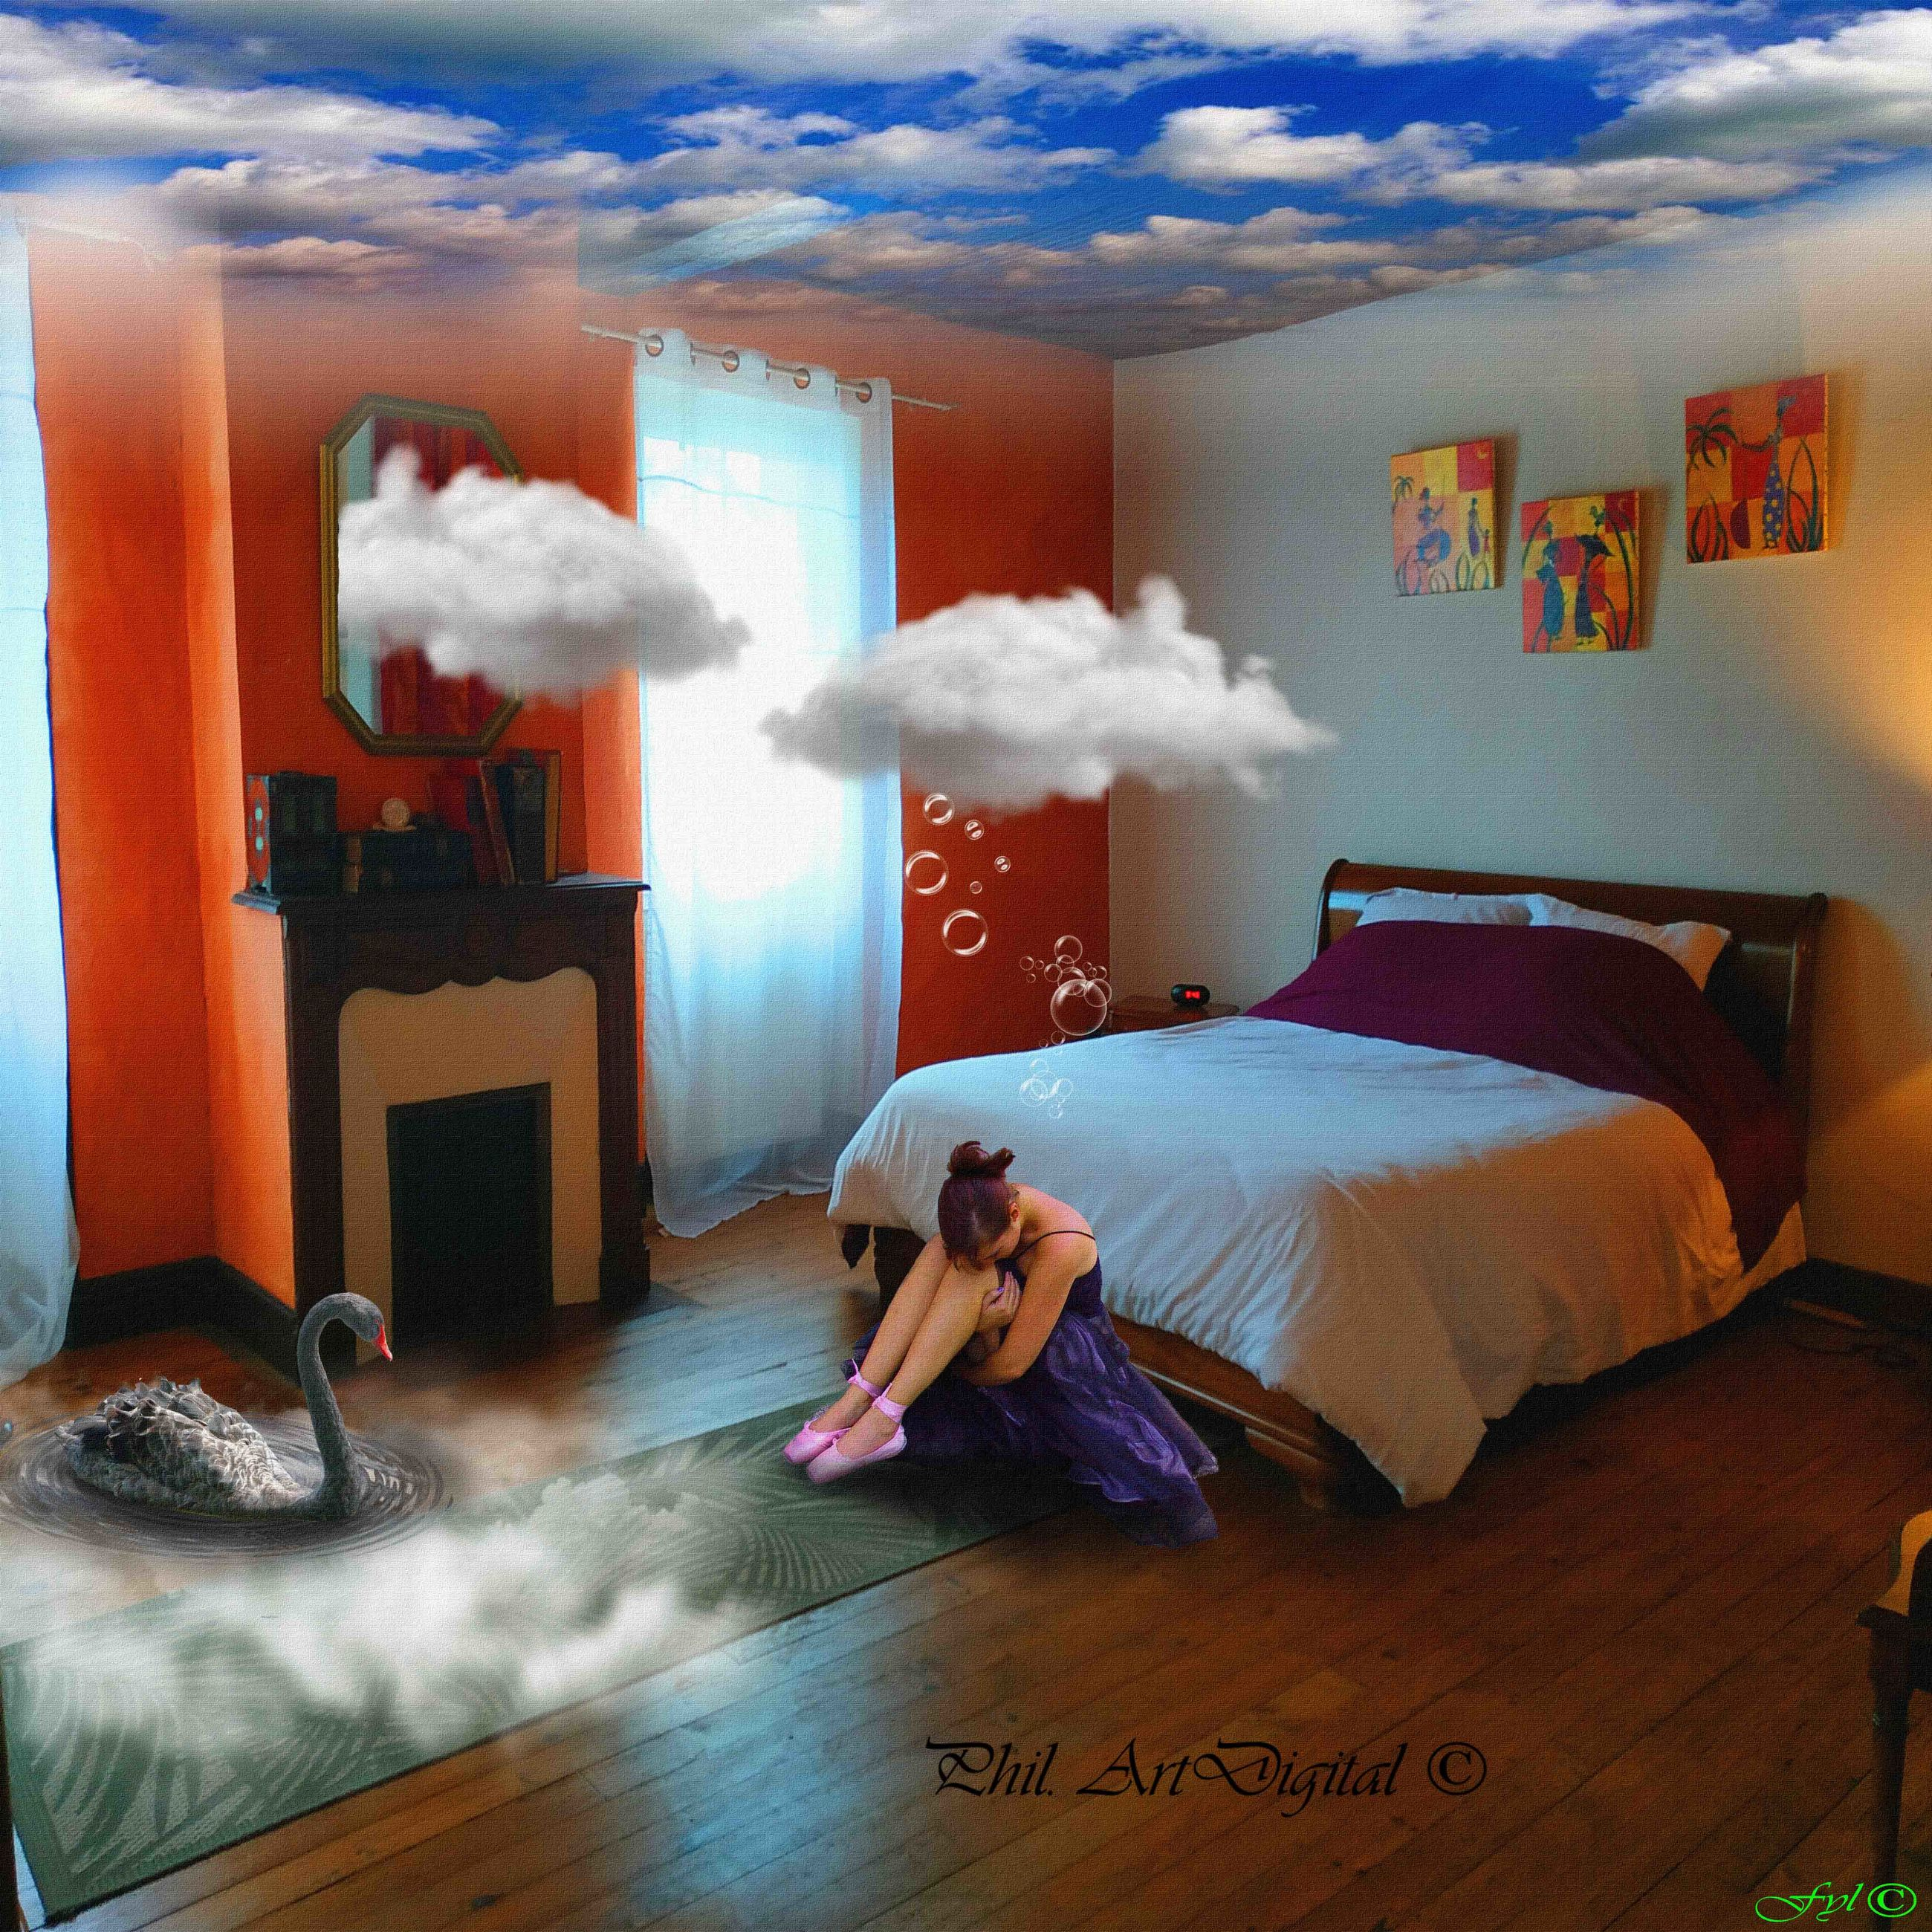 furniture, indoors, text, one person, real people, blurred motion, motion, lifestyles, leisure activity, smoke - physical structure, bed, women, domestic room, home interior, digital composite, relaxation, pillow, full length, adult